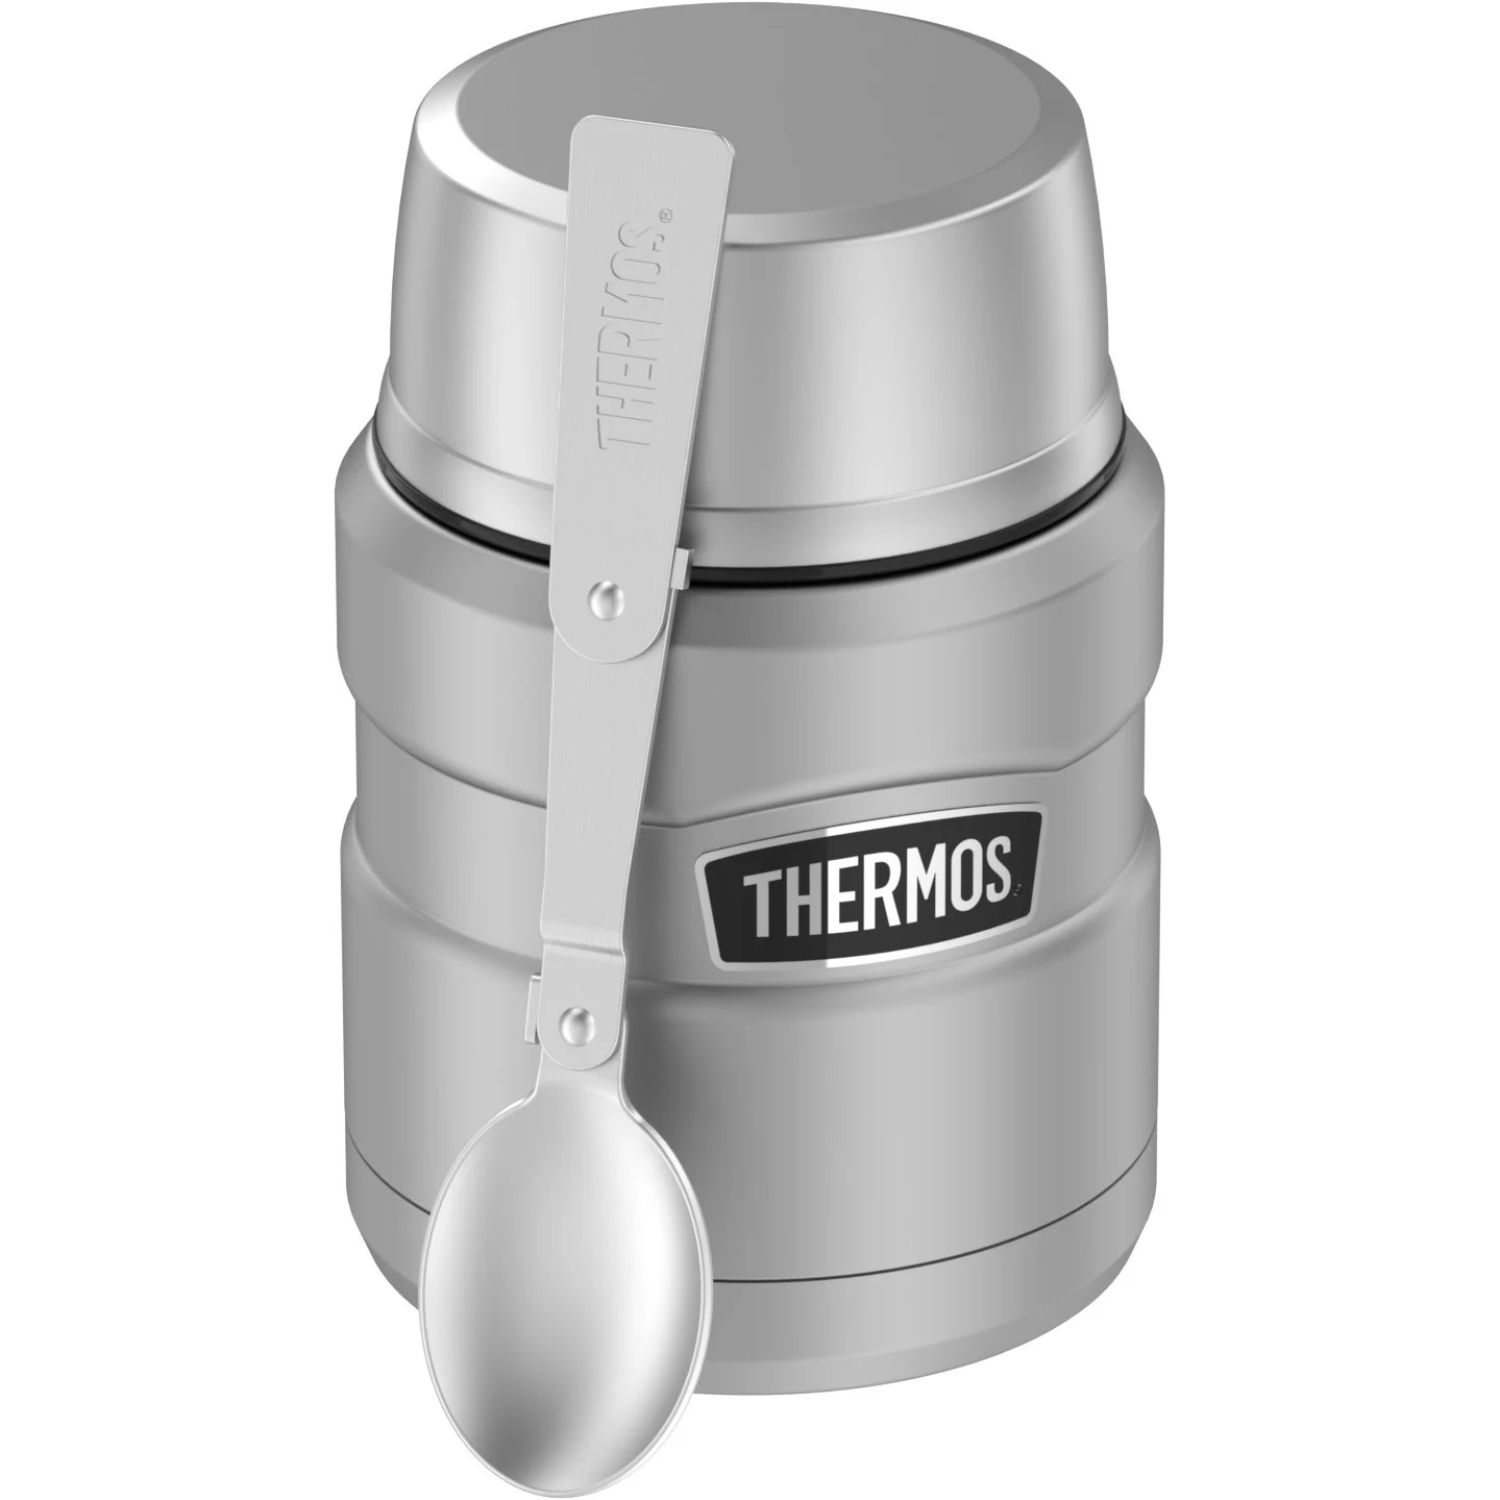 Thermos 16oz Stainless Steel Food Jar w Folding Spoon Silver